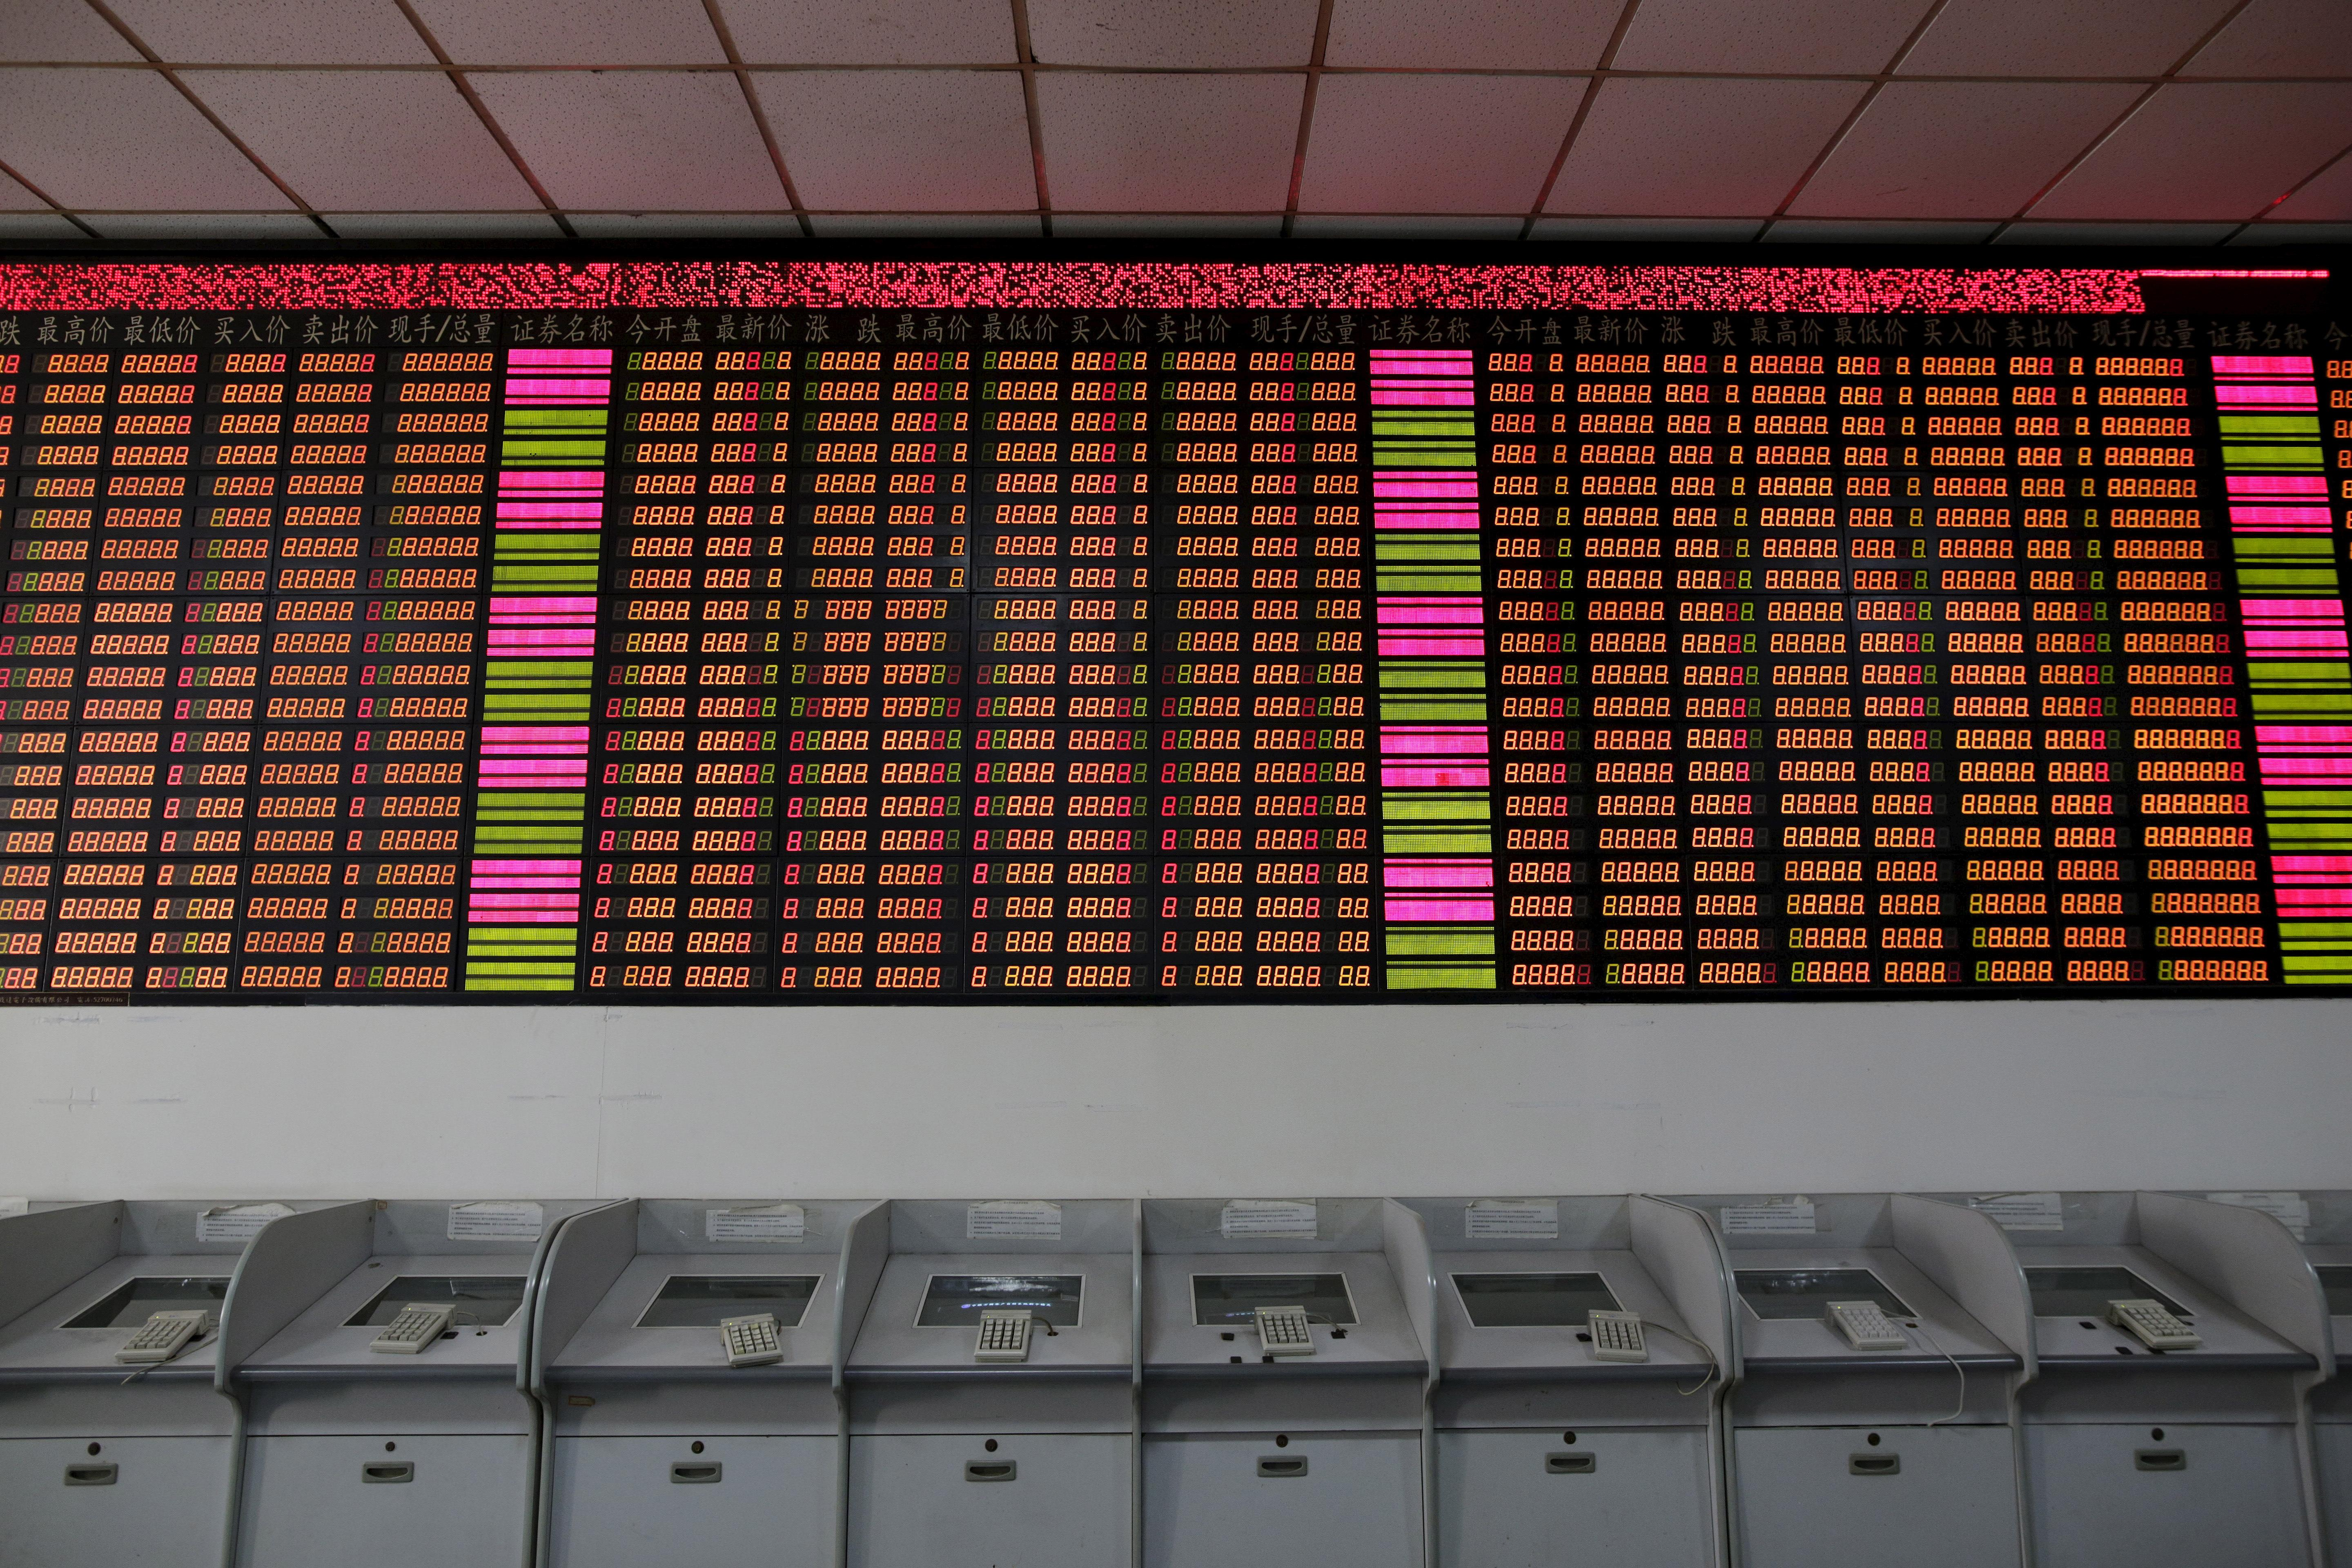 The Week Ahead: China could take larger footprint in portfolios